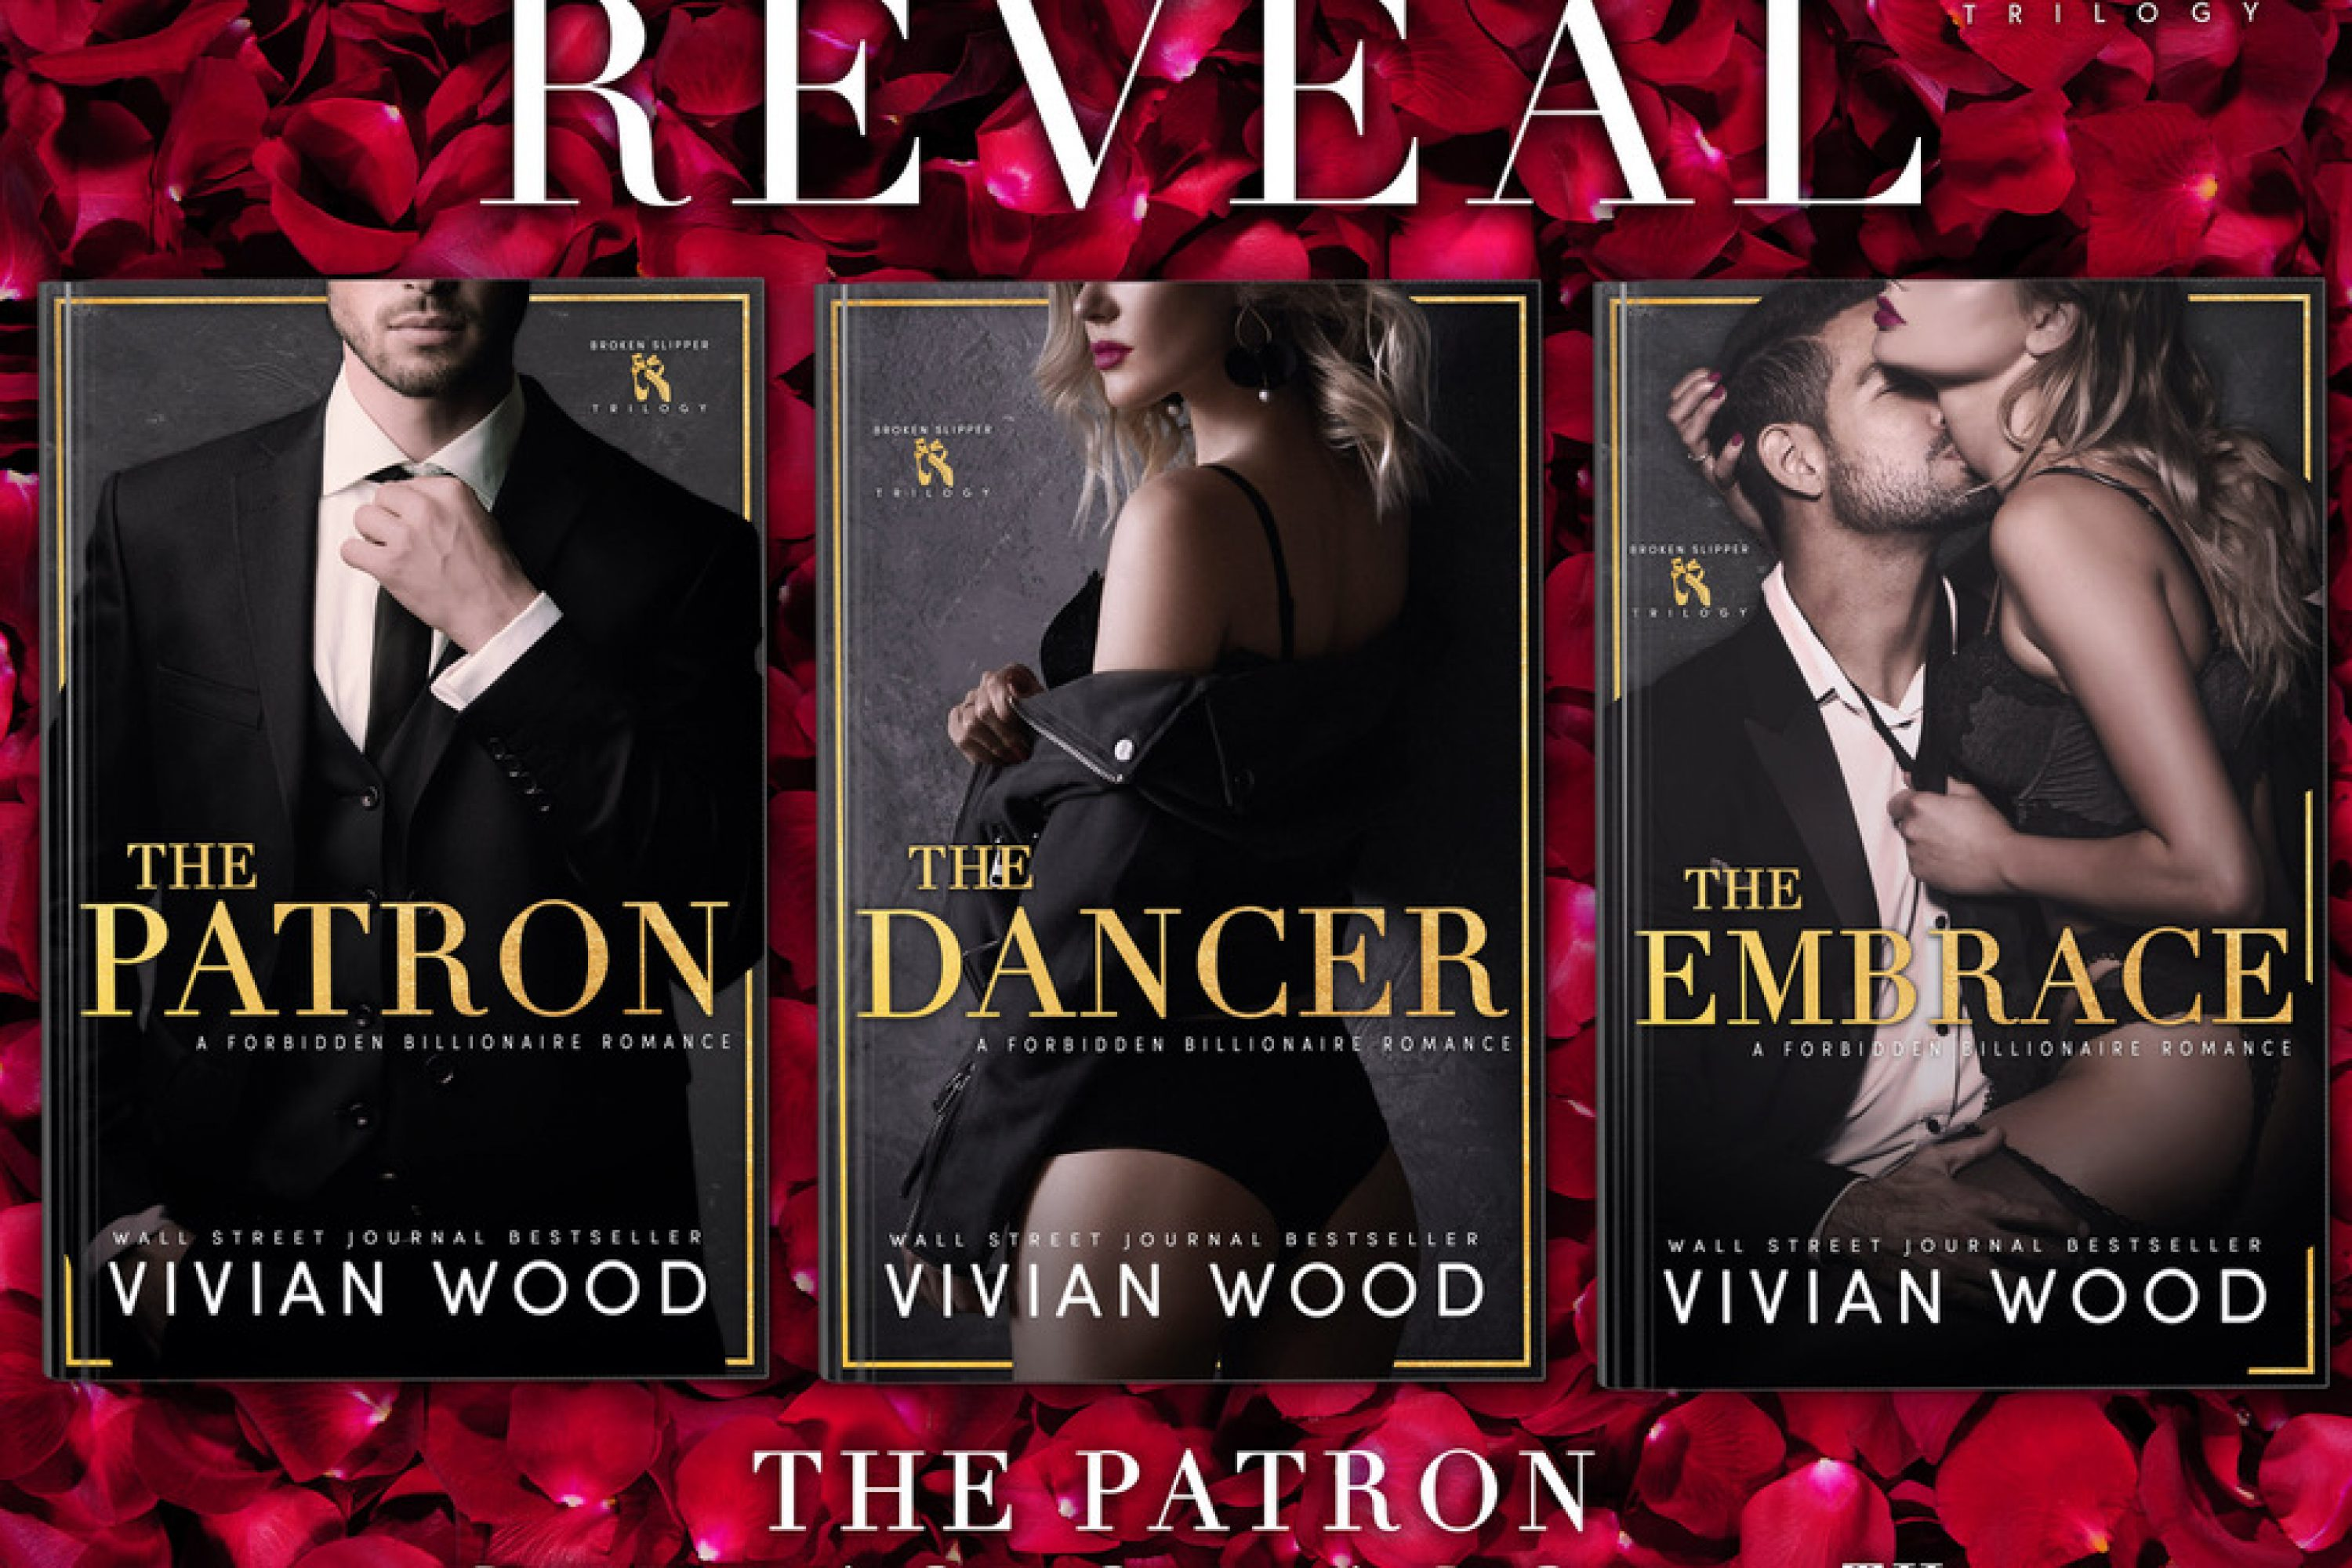 Cover Reveal: Broken Slipper Trilogy by Vivian Wood